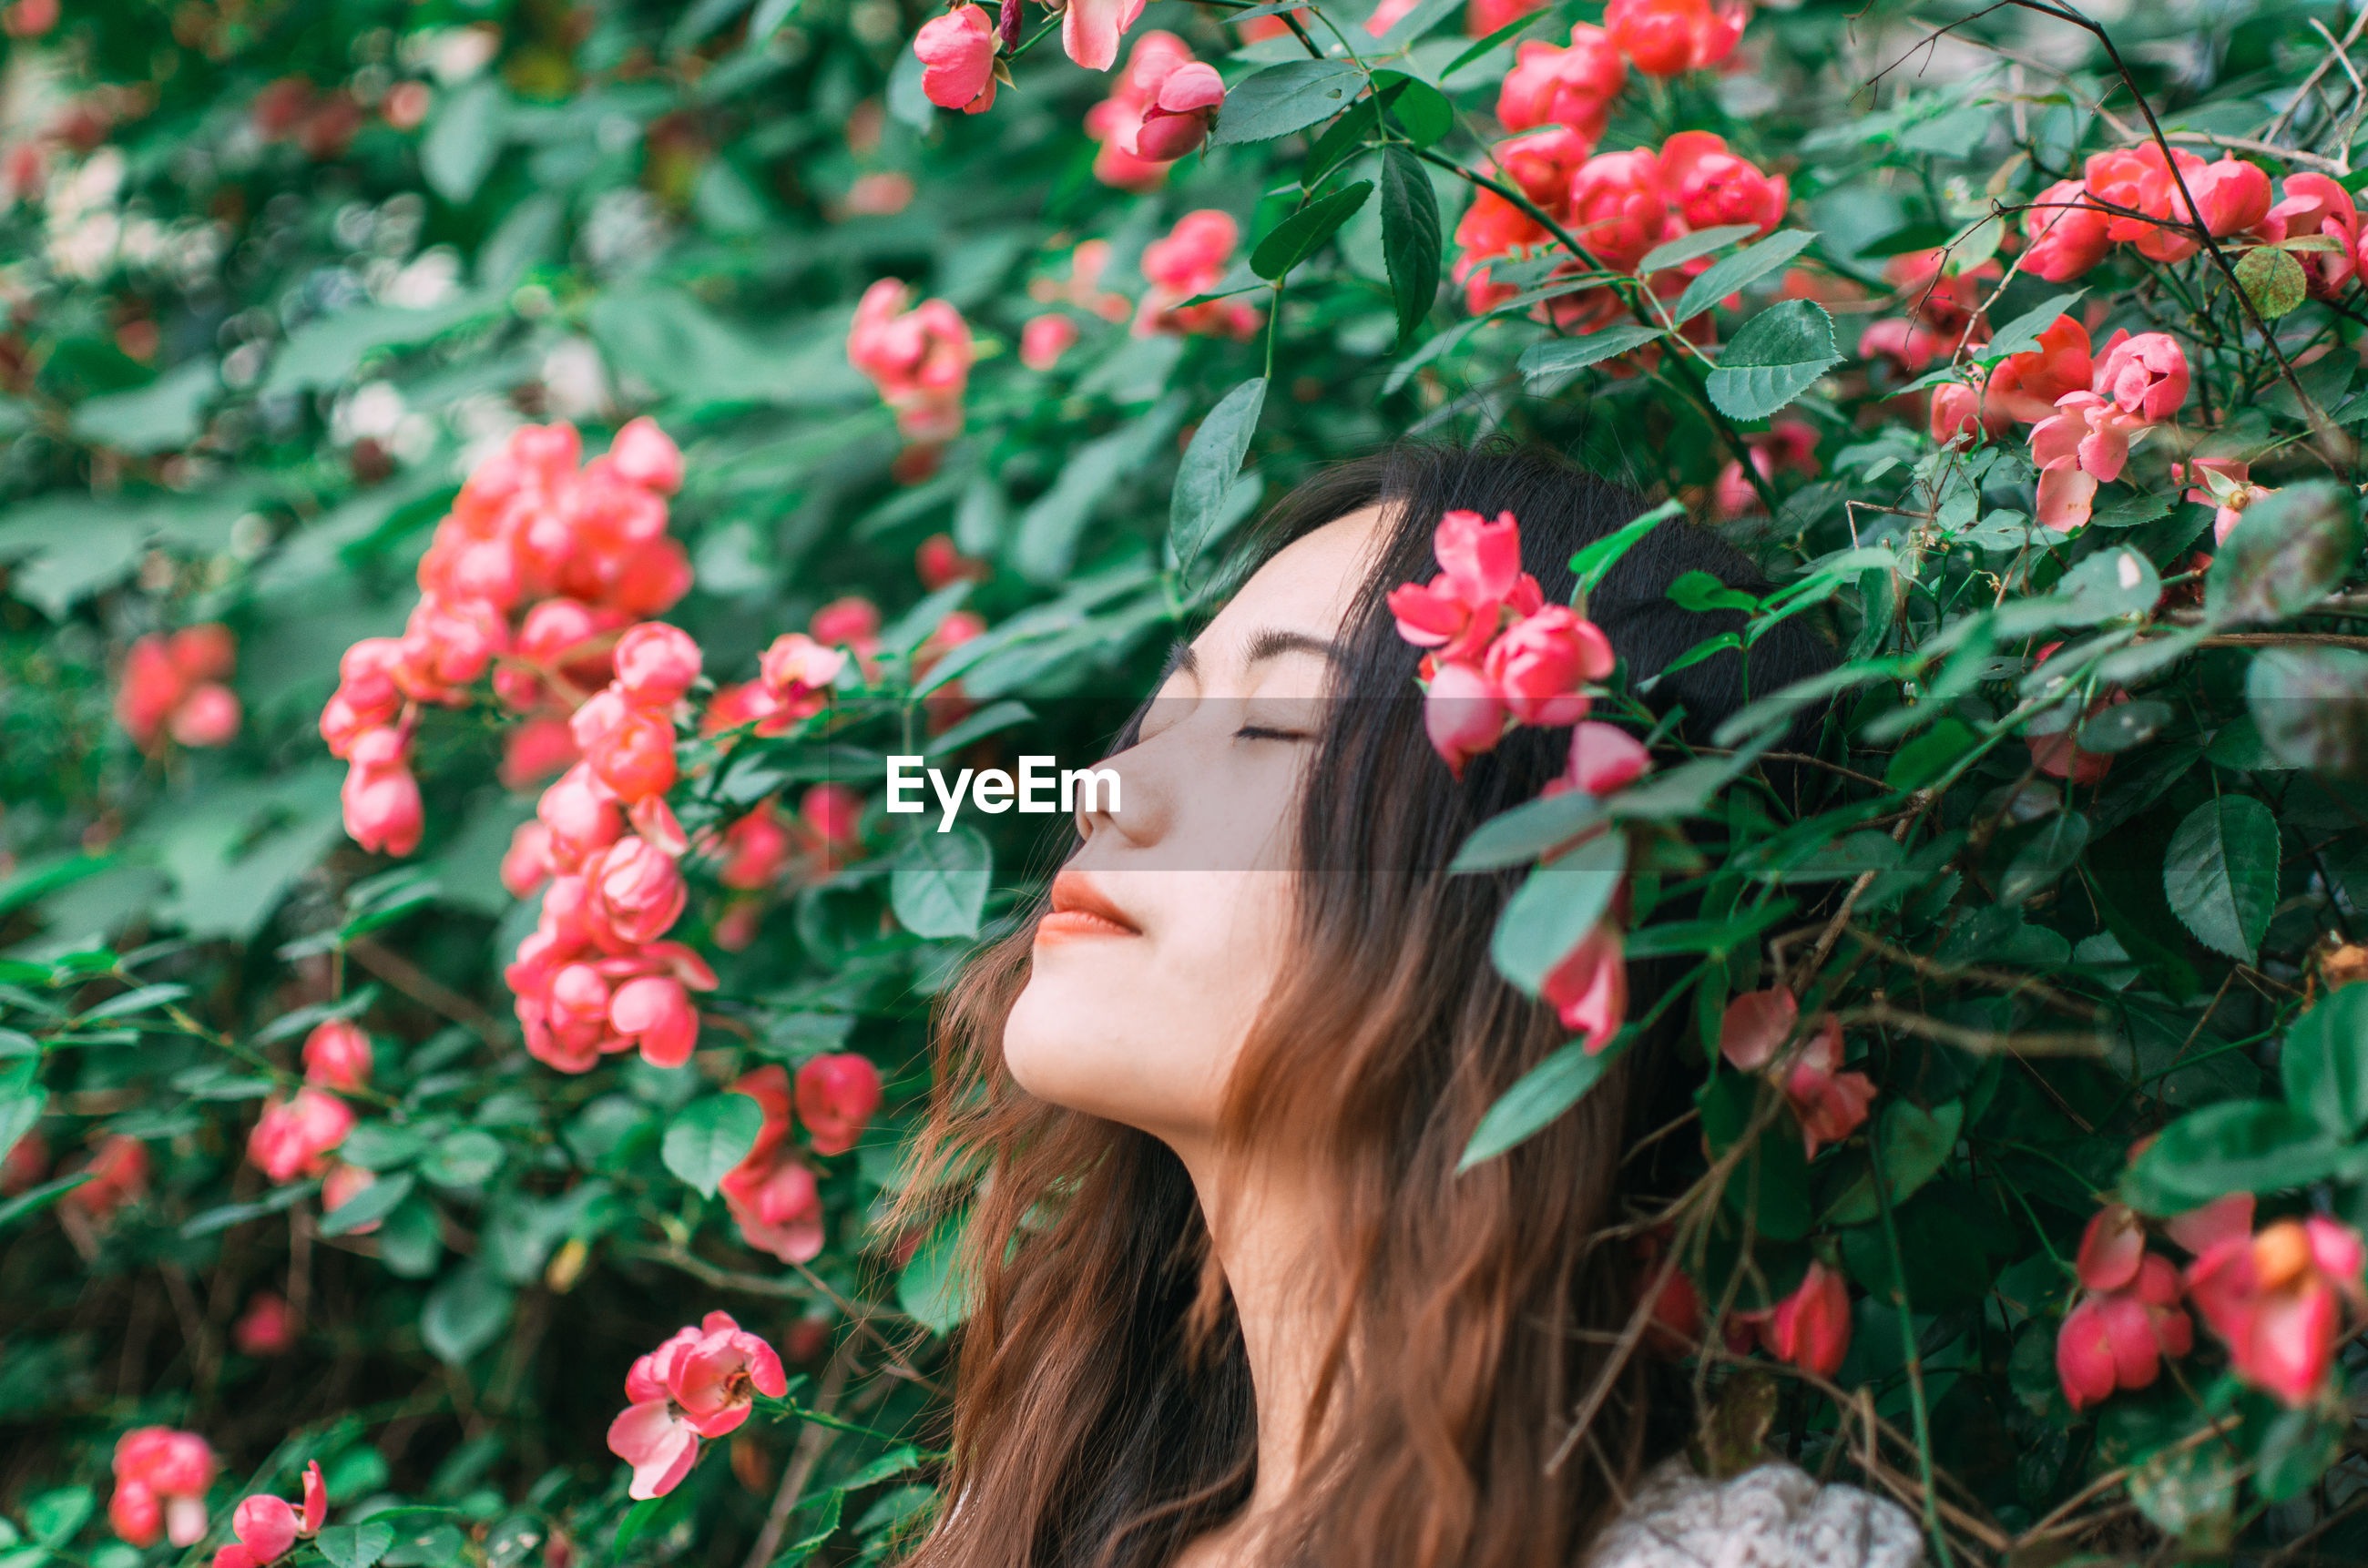 Portrait of young woman day dreaming by flower bush